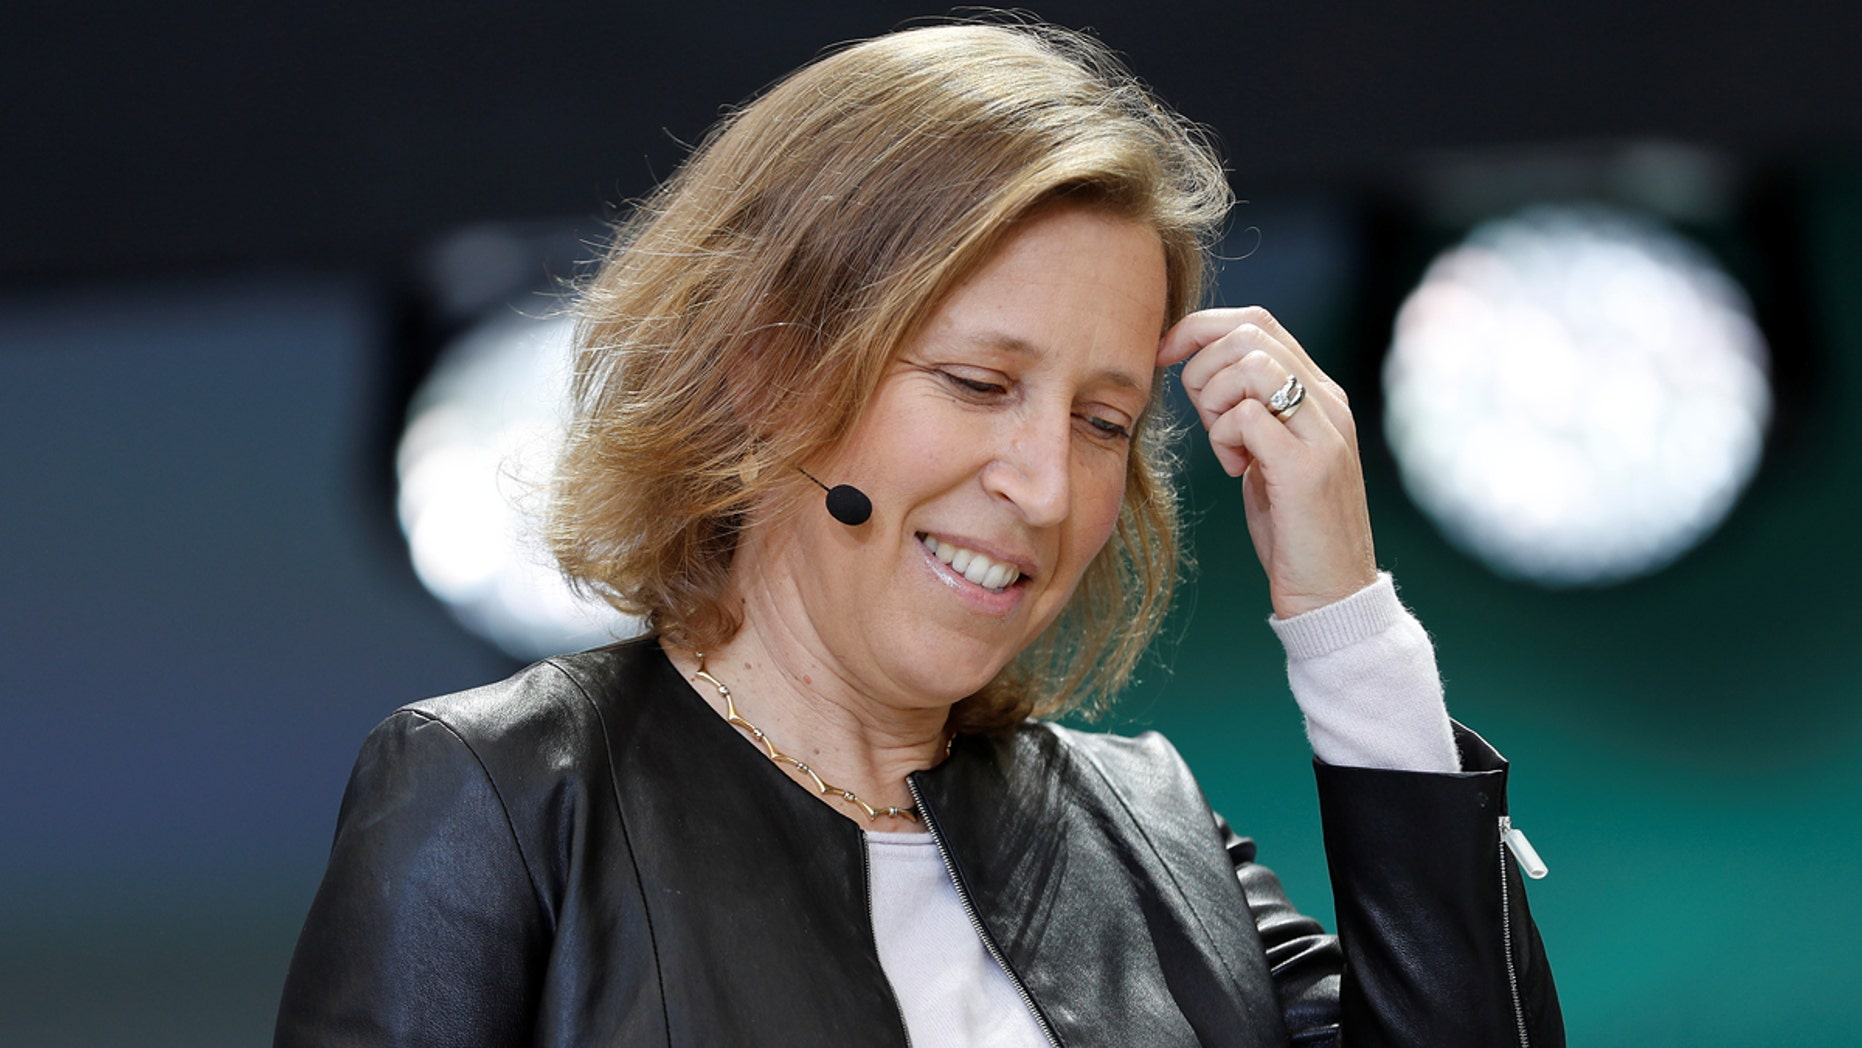 File photo - YouTube CEO Susan Wojcicki, seen above, announced changes to improve the video platform at South by Southwest.